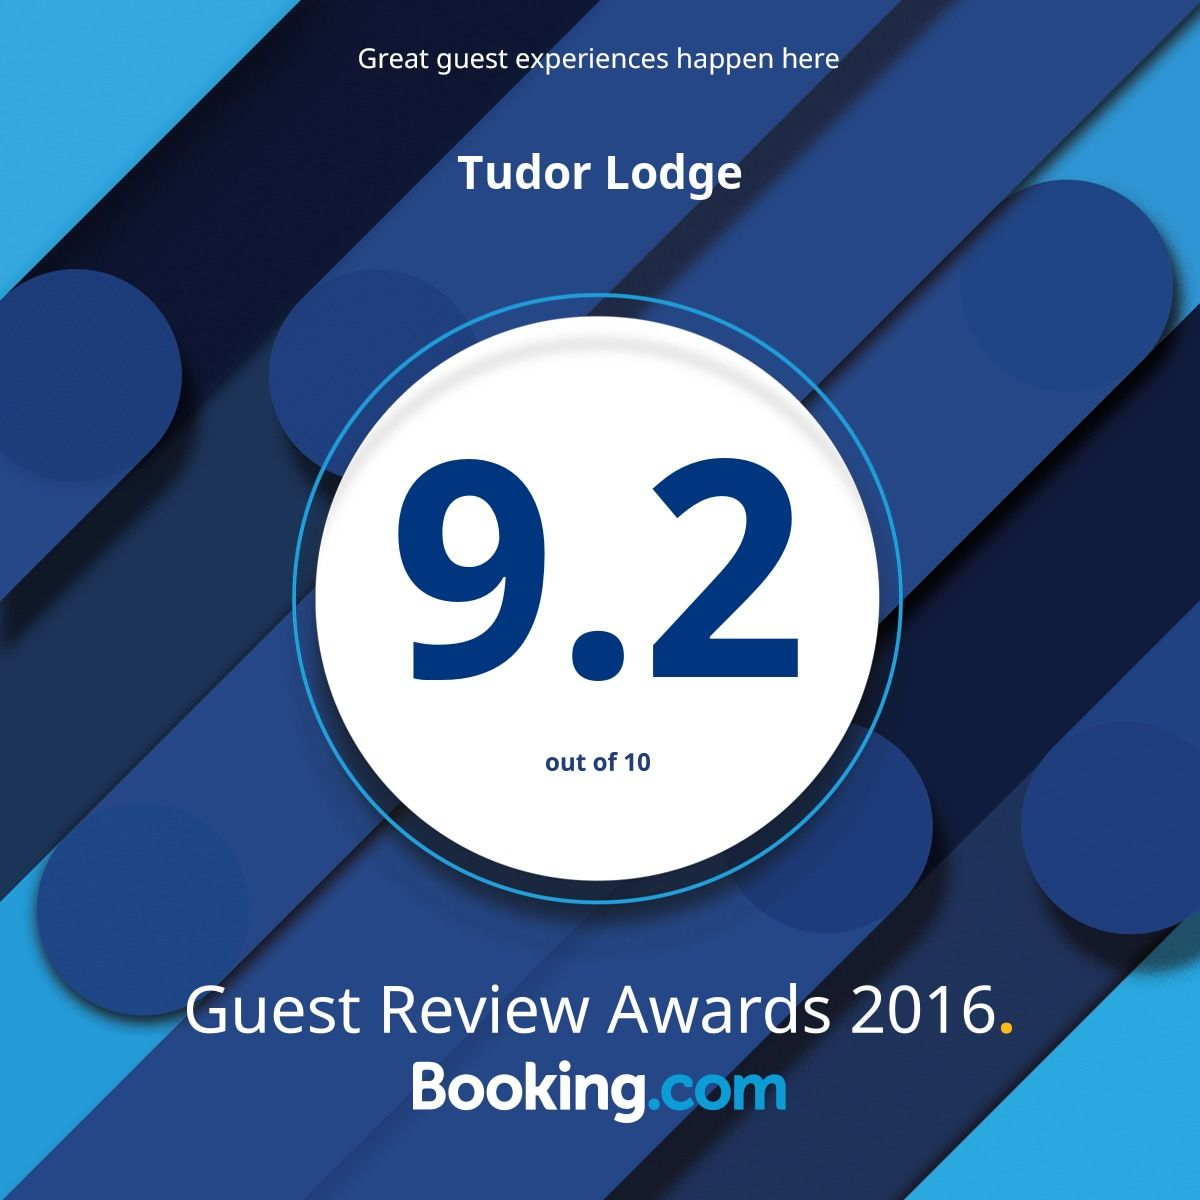 An excellent rated Hotel in Snowdonia